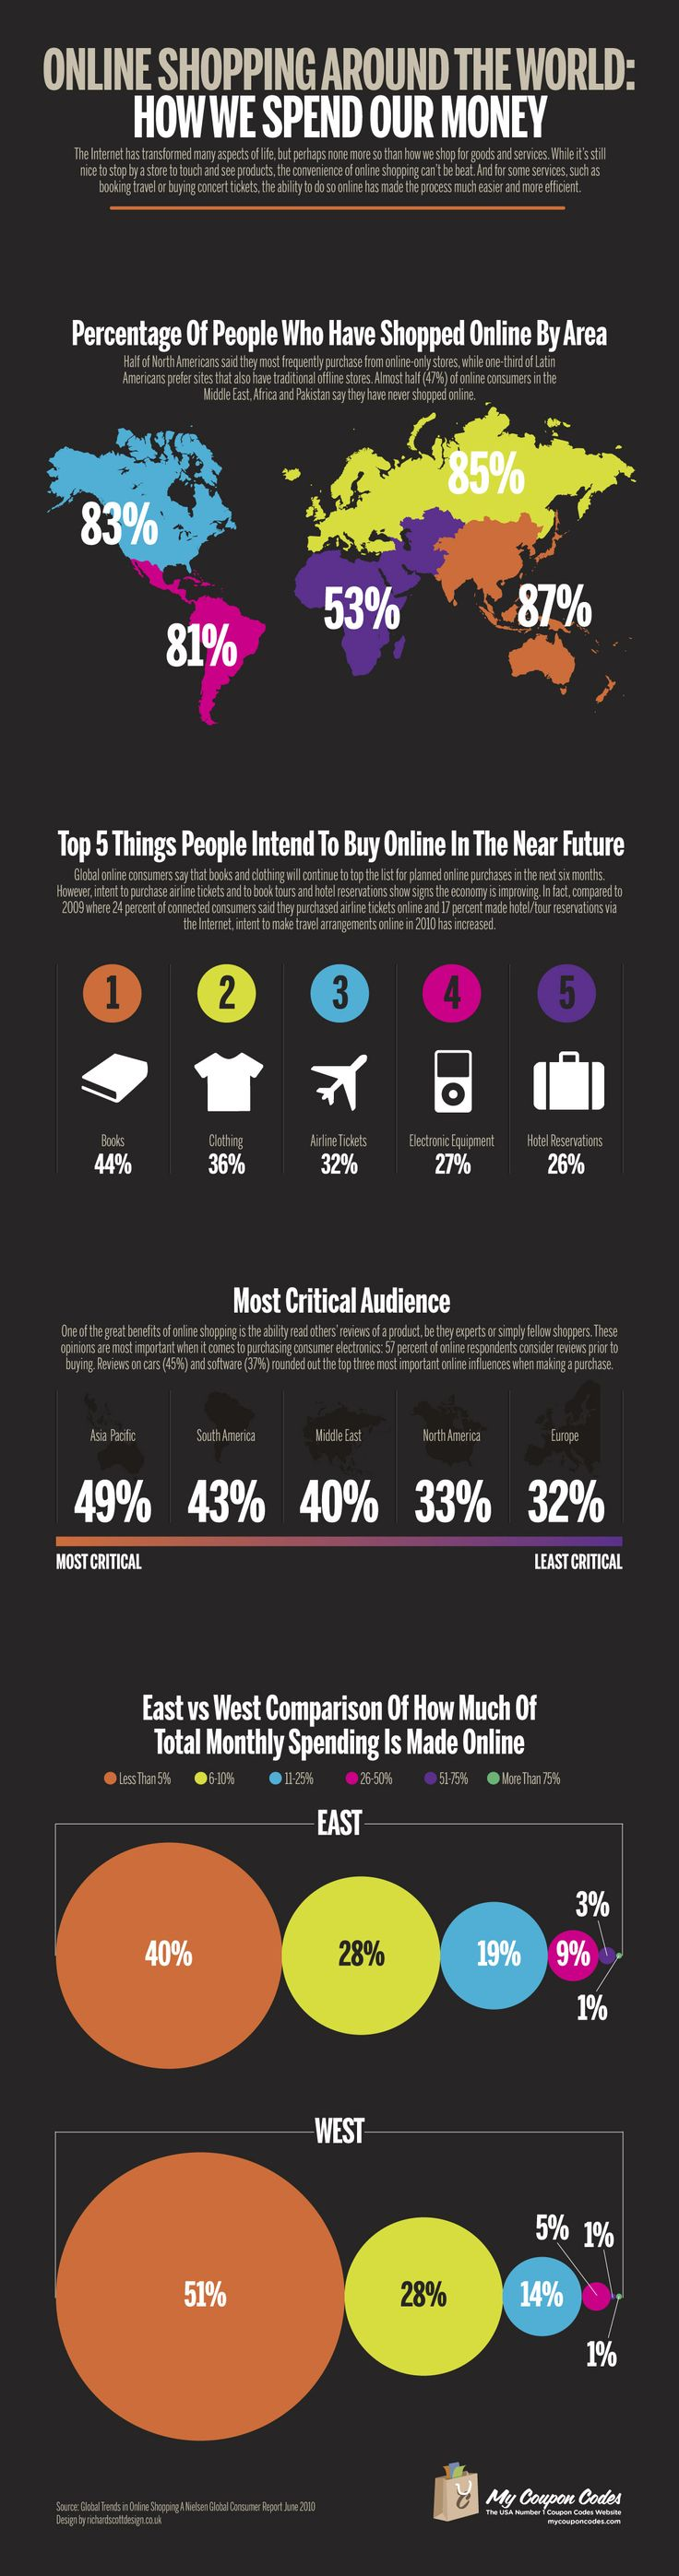 online shopping around the world, how we spend our money